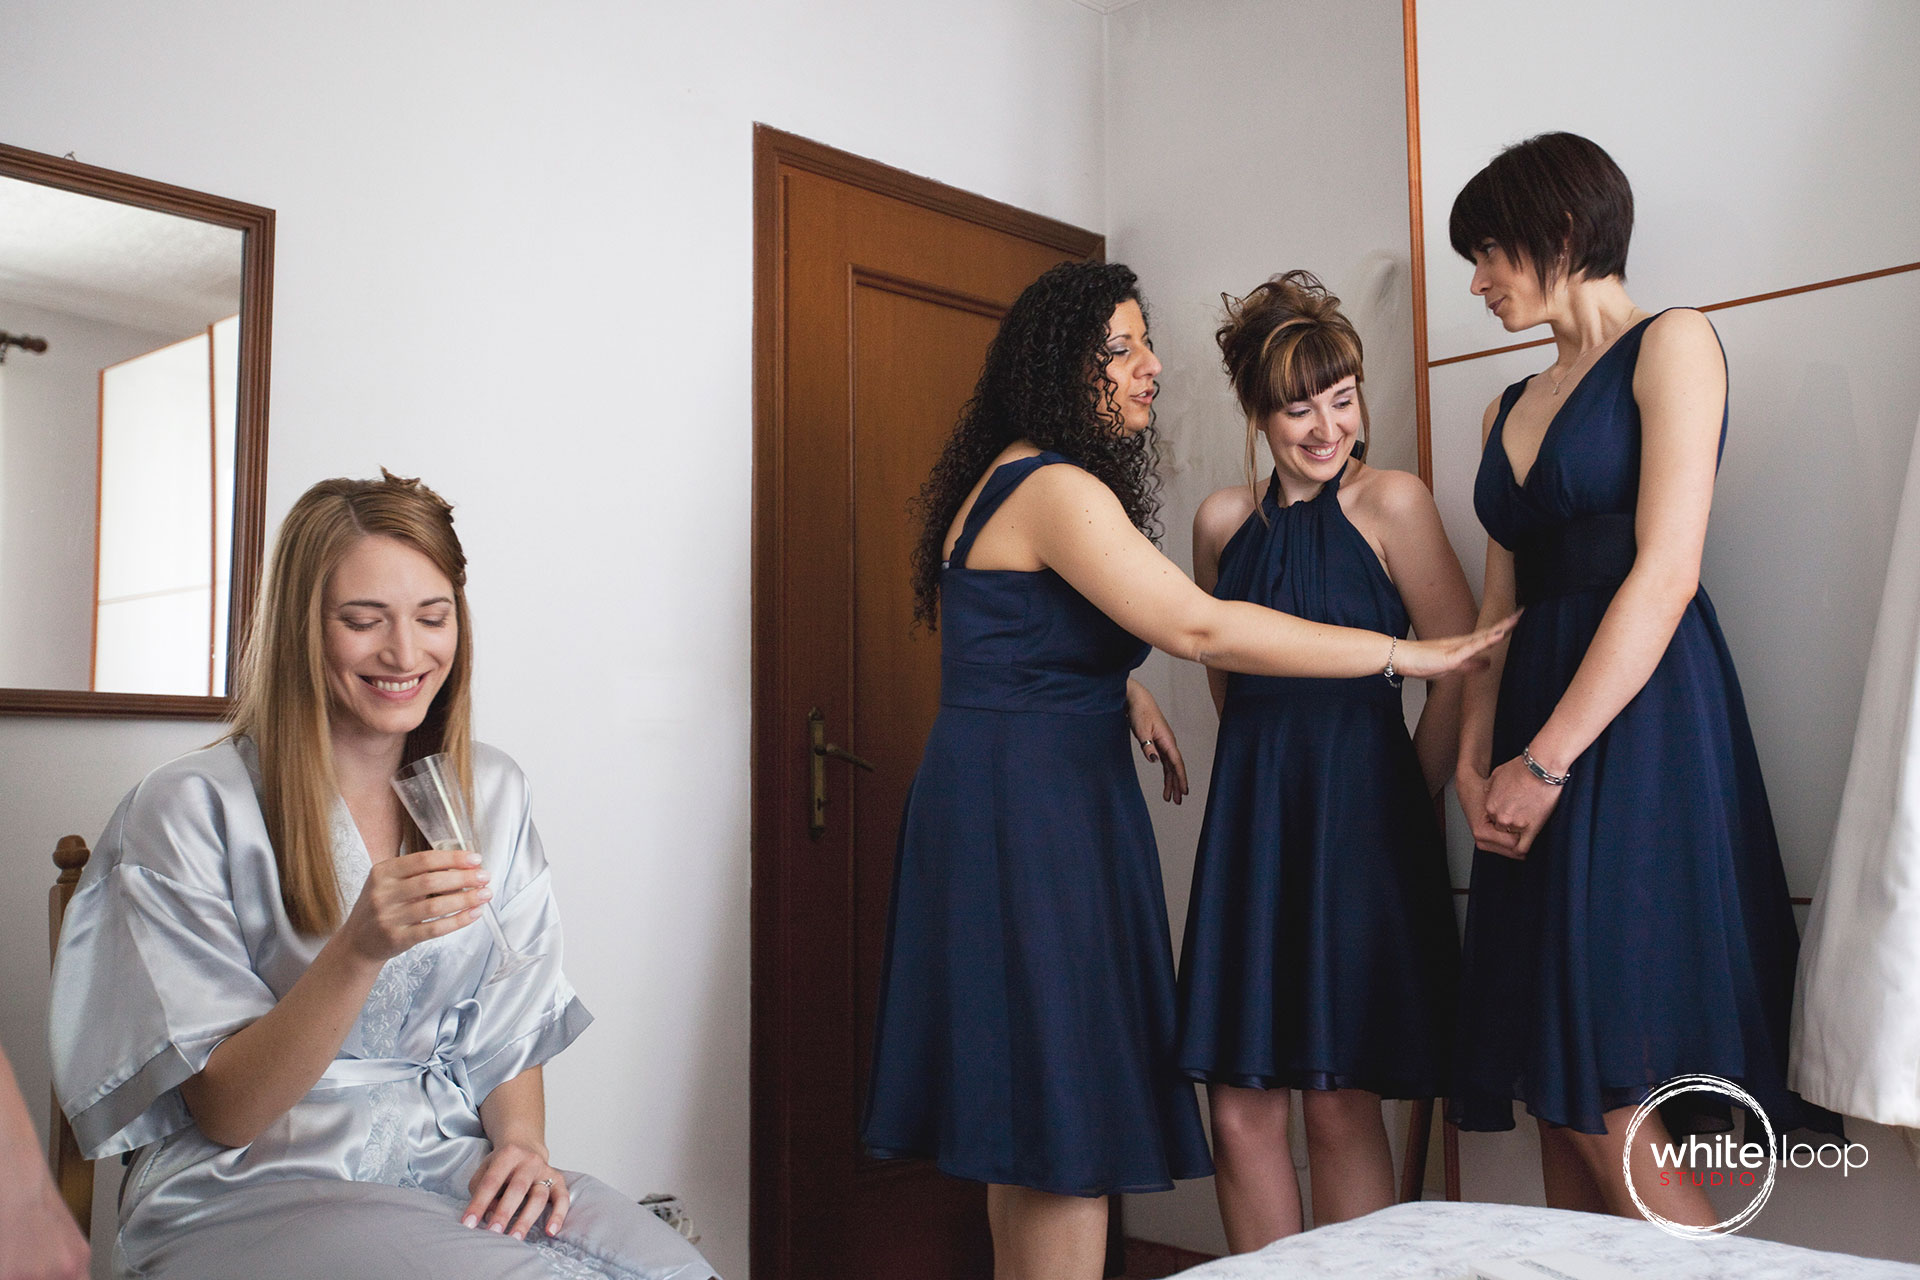 The bride enjoys the moment with her bridesmaids, with a glass of white wine, preparing for the wedding.